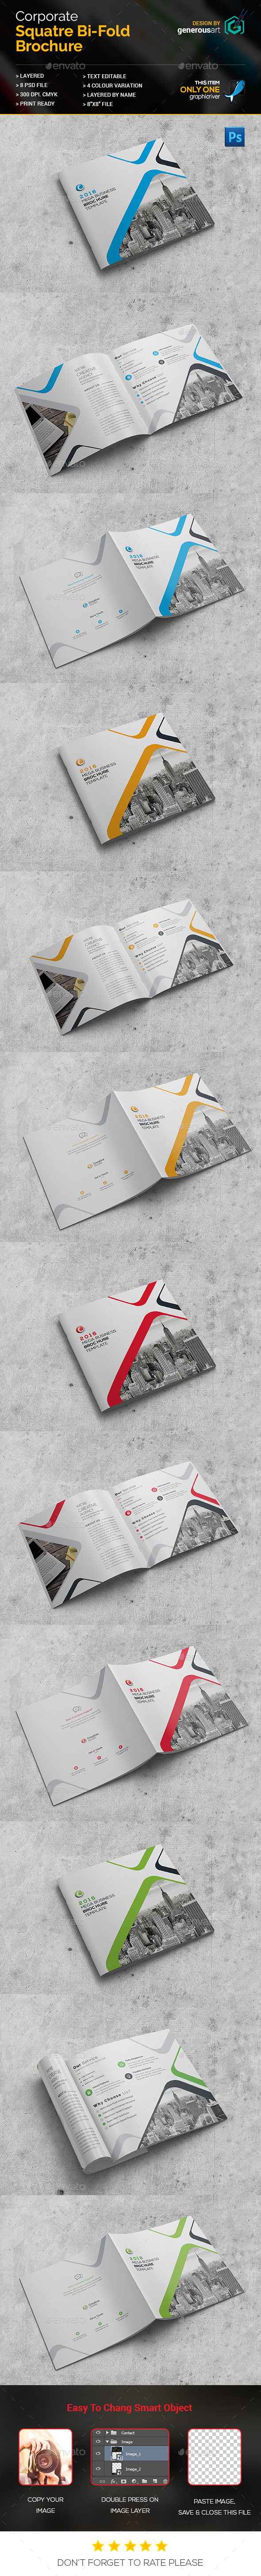 Pro Square Bi-Fold Brochure - Corporate Brochures